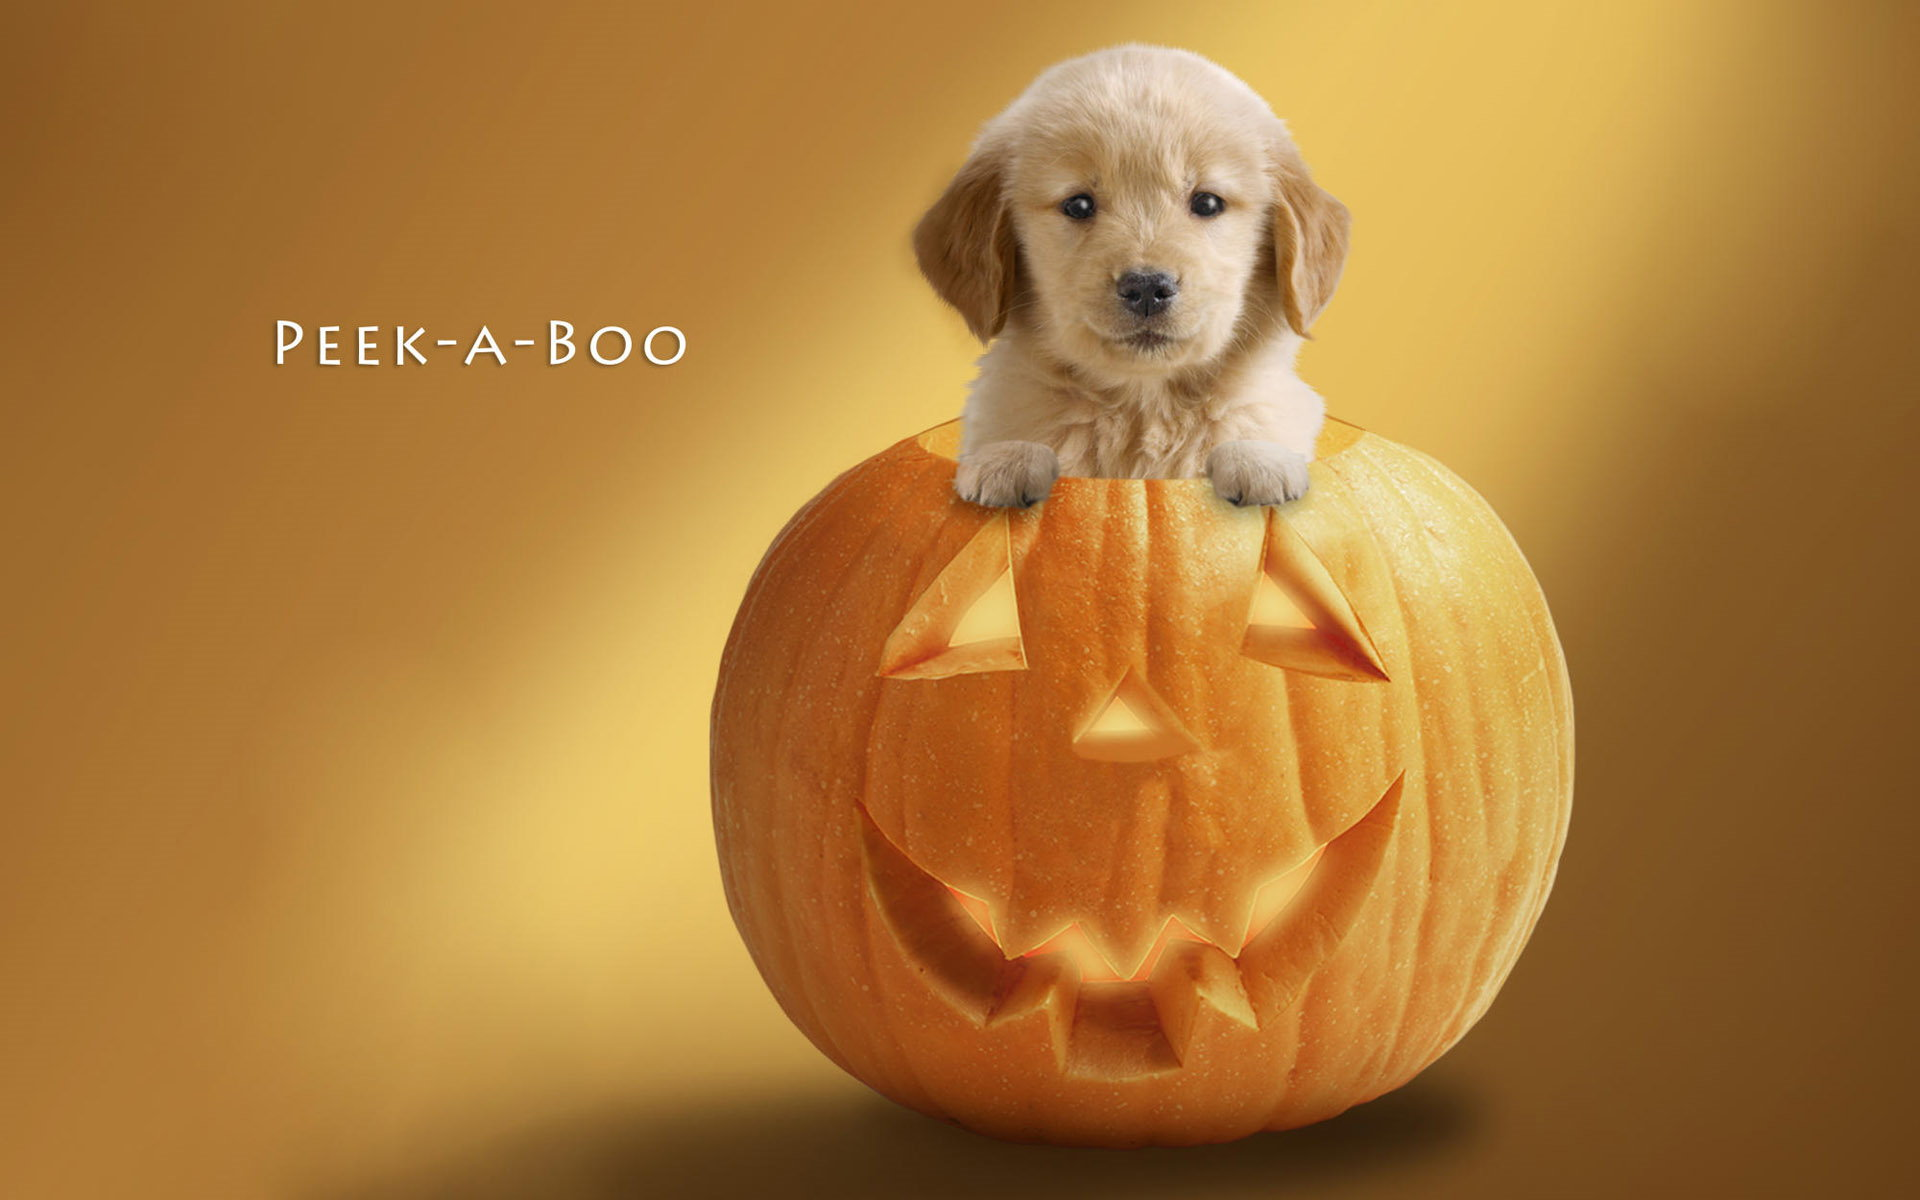 halloween wallpapers dog - HD Desktop Wallpapers | 4k HD